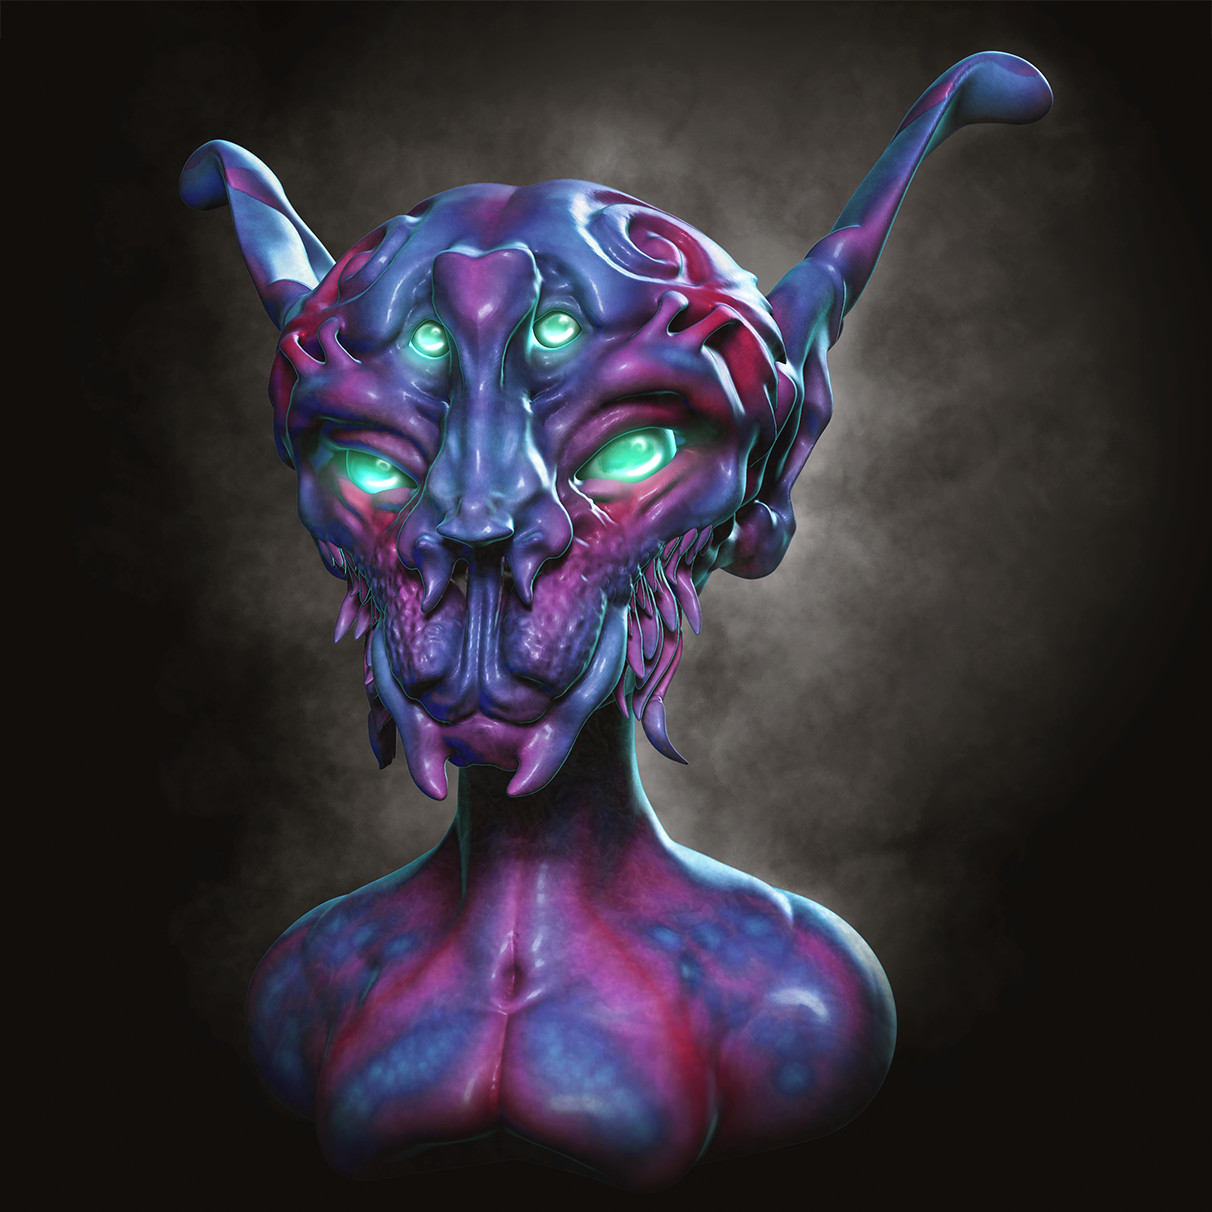 Medium sculpt imported to ZBrush, multiple renders, Photoshop Comp + paintover.